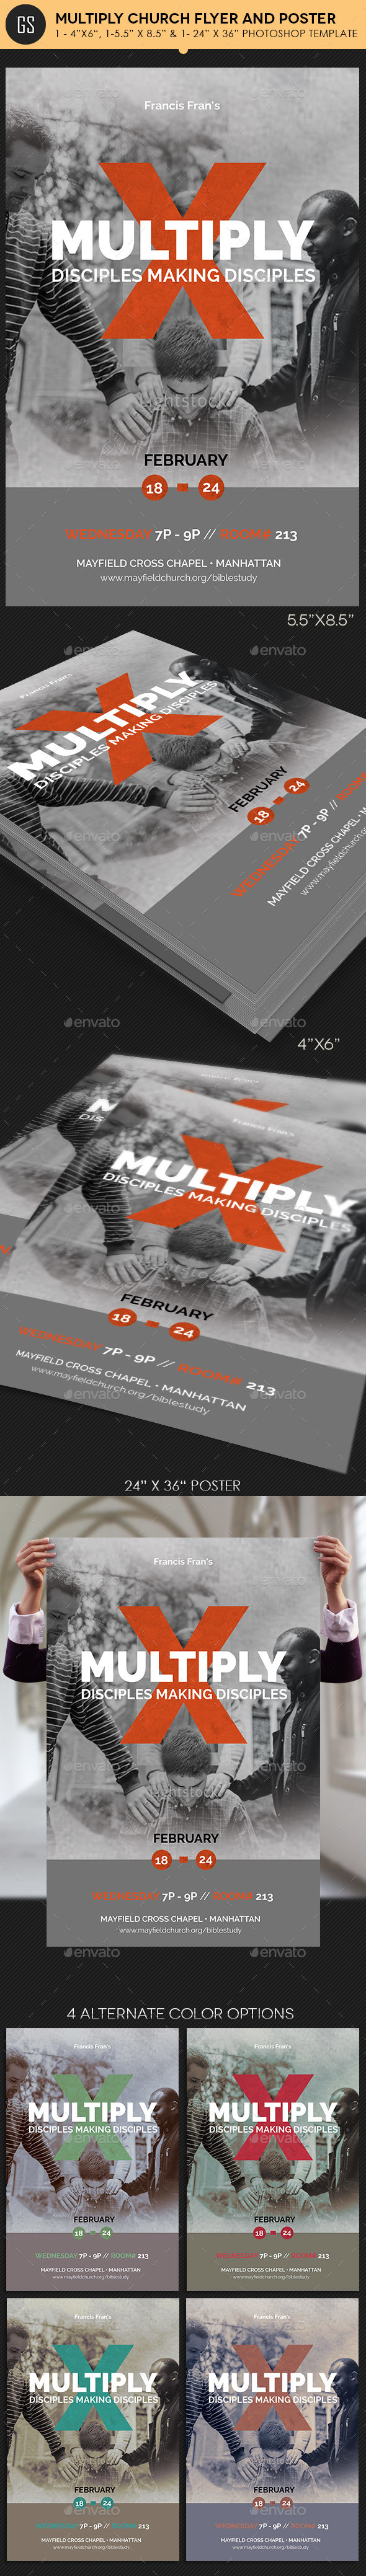 Multiply Church Flyer Poster Template Photoshop - Church Flyers